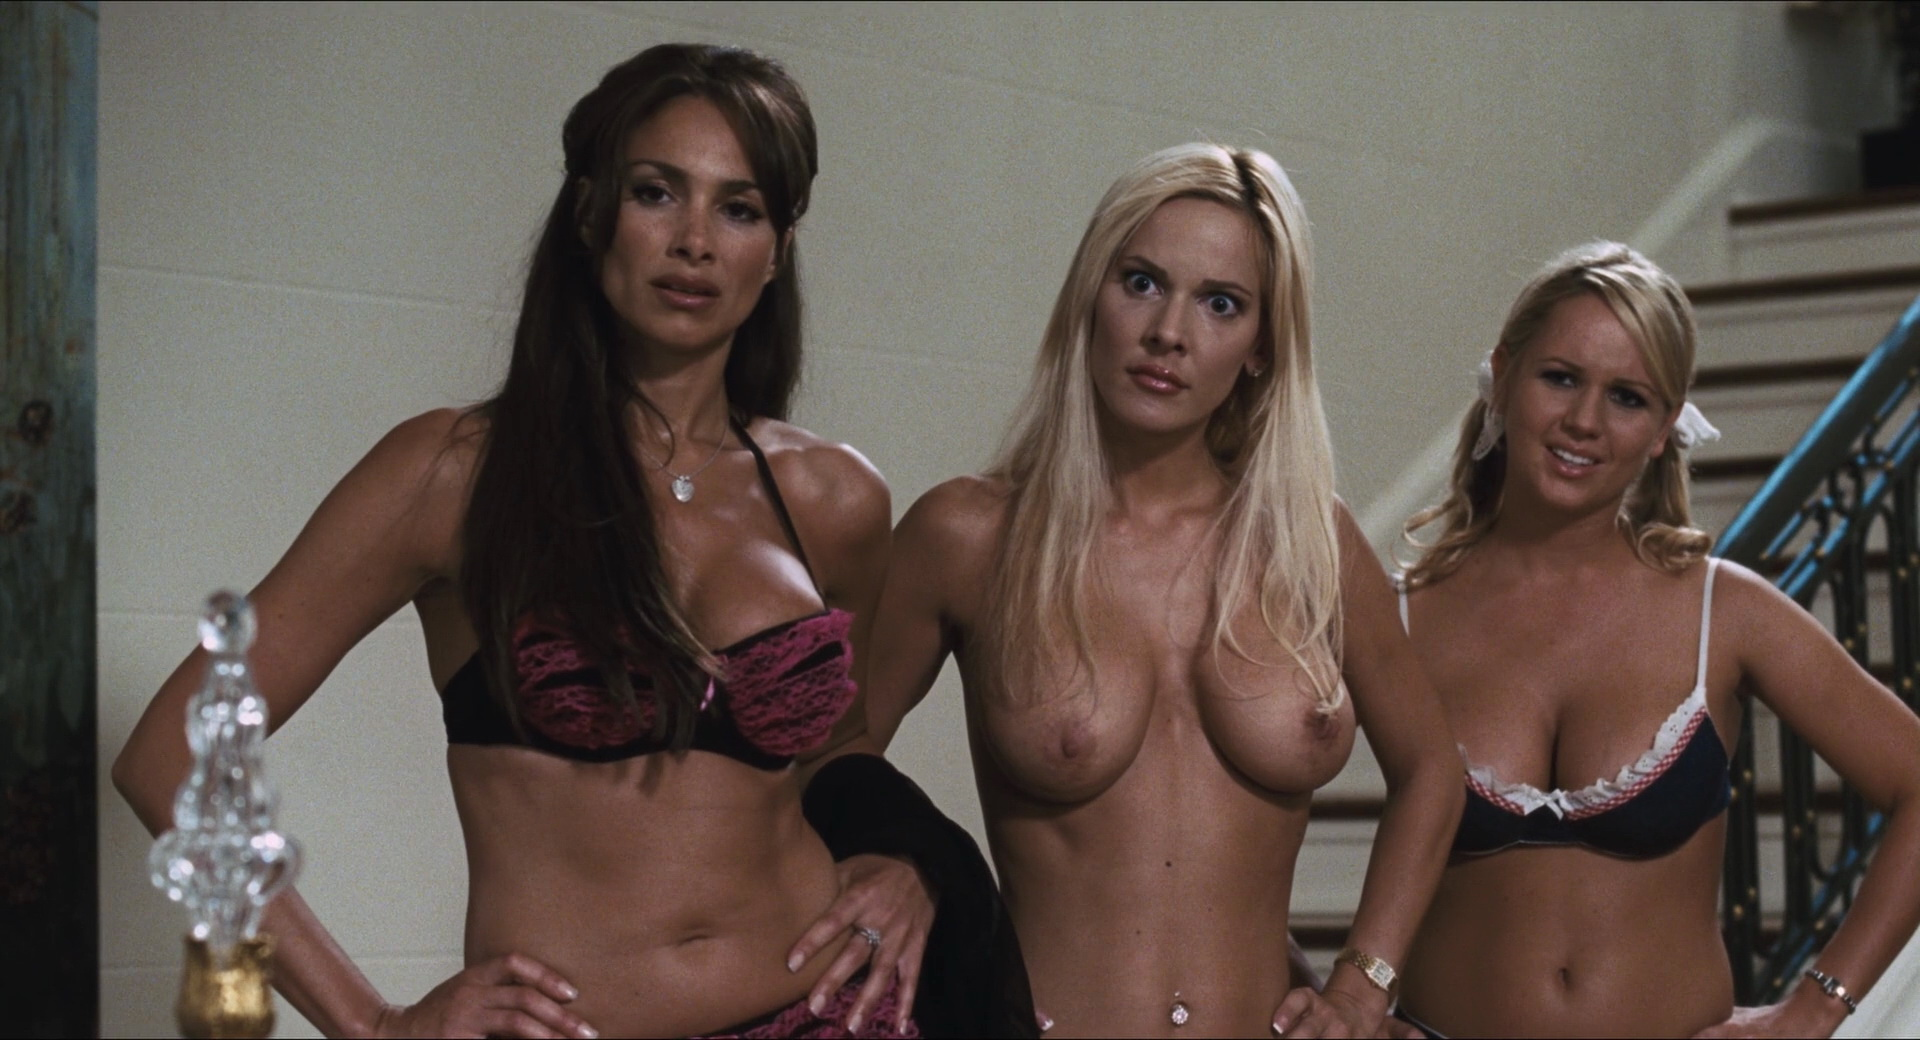 Simona Fusco, Jennifer Walcott – The Pool Boys (2011) HD 1080p